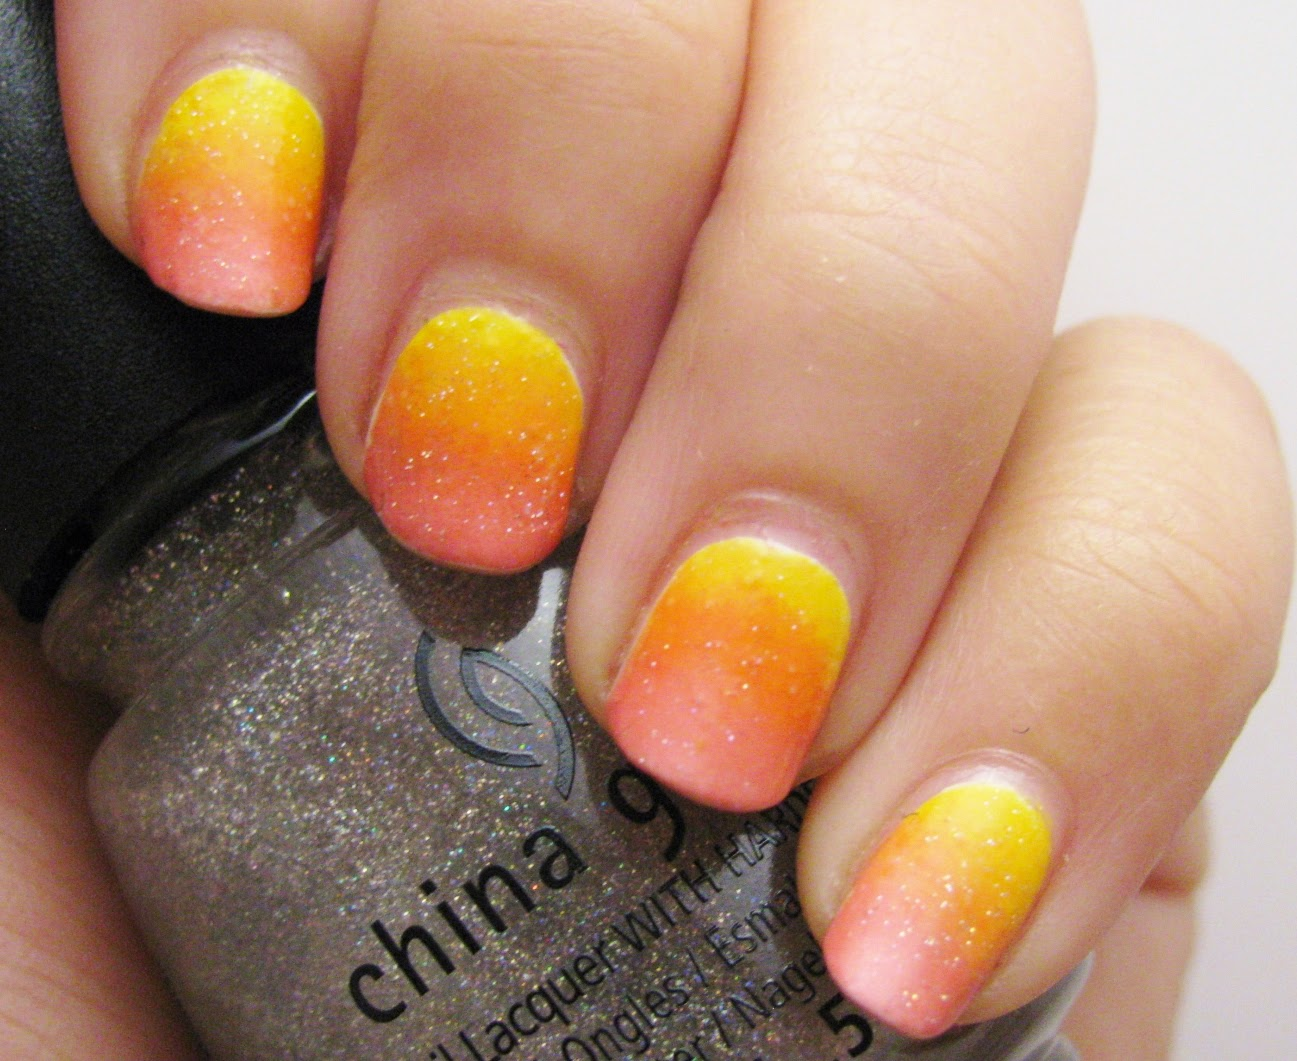 The Super Secret Nail Blog: Weekend Nails: Sunrise/Sunset Gradients ...